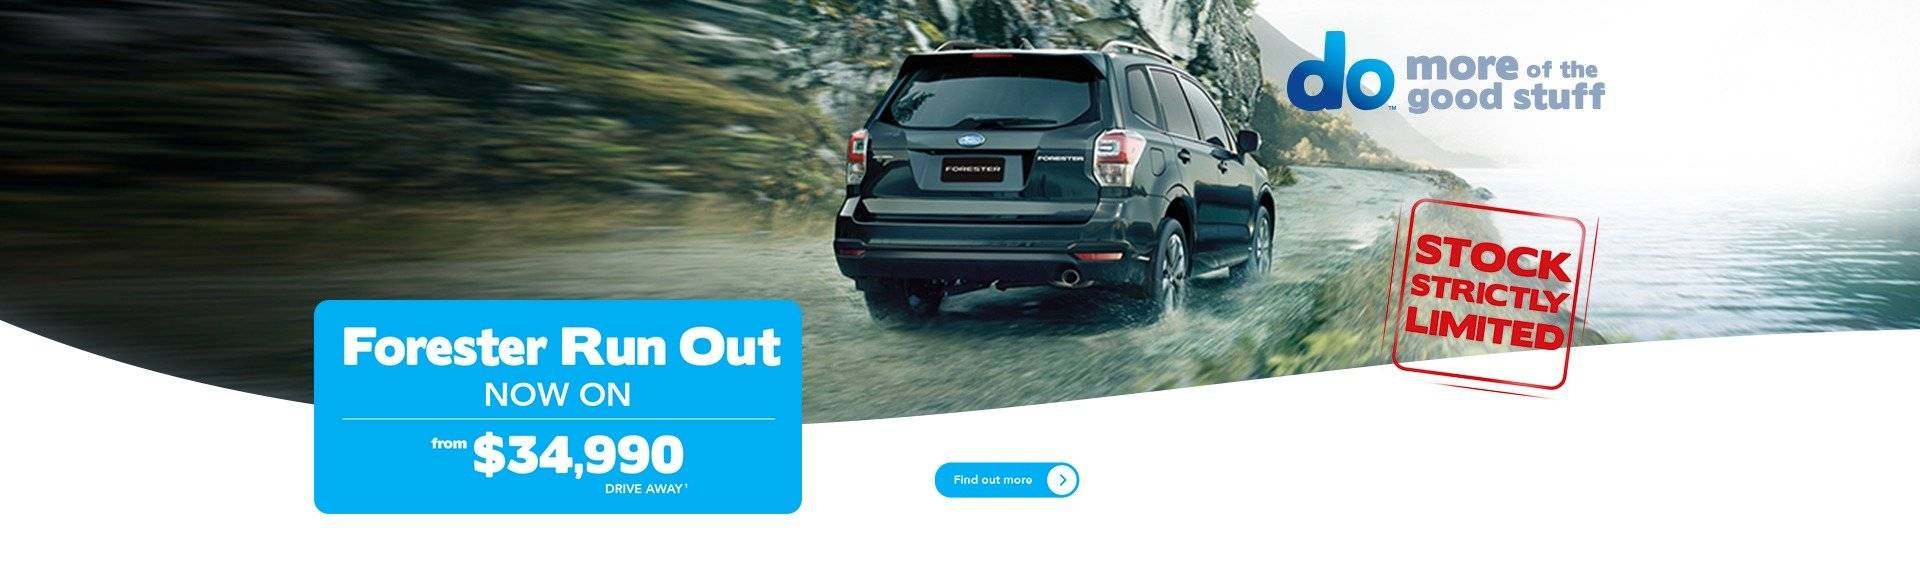 Subaru Forester Run Out Offer